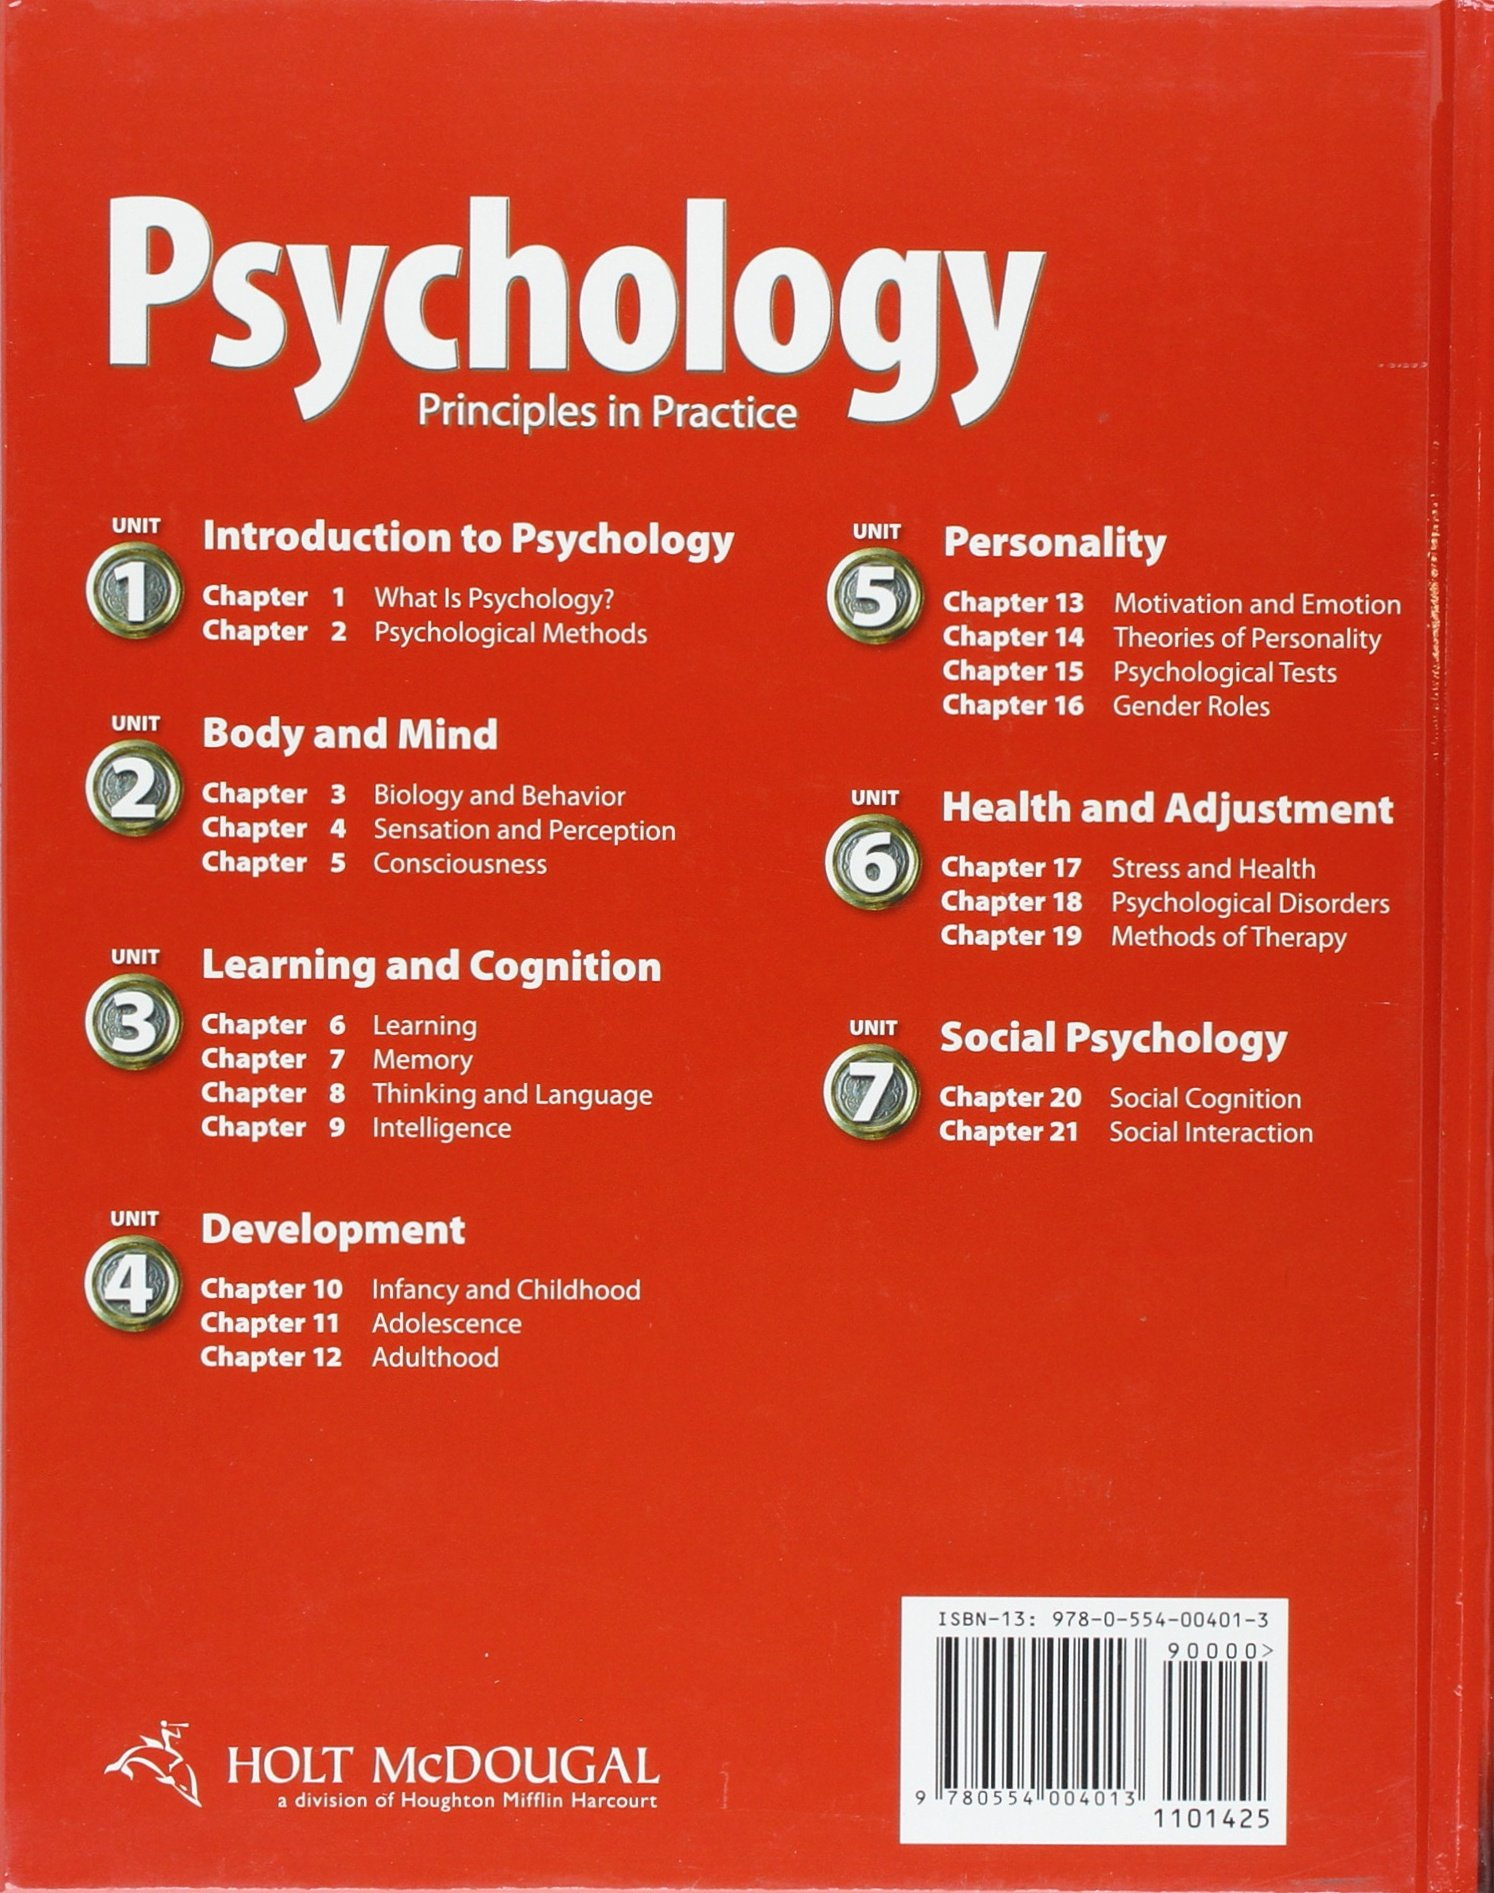 an analysis of the guilt feeling in the psychological research (group psychology and the analysis of the but not reassure the patient not to feel guilty stimulate the development and research of psychoanalysis.